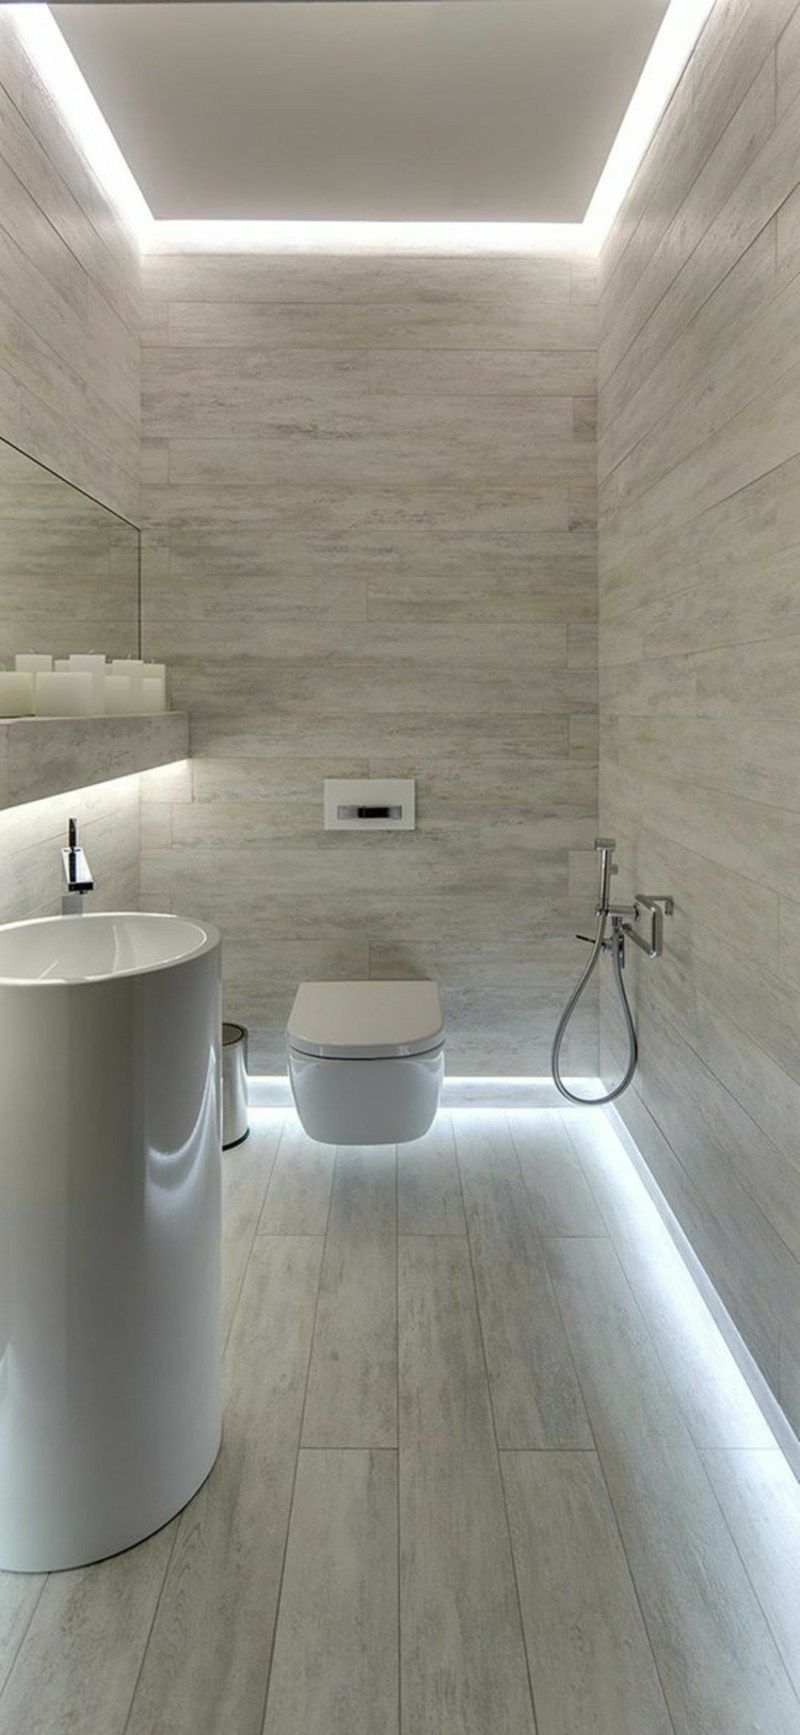 Led Lichtleisten Bad Pin By Dj Peter On Led In 2019 Bathroom Lighting Bathroom